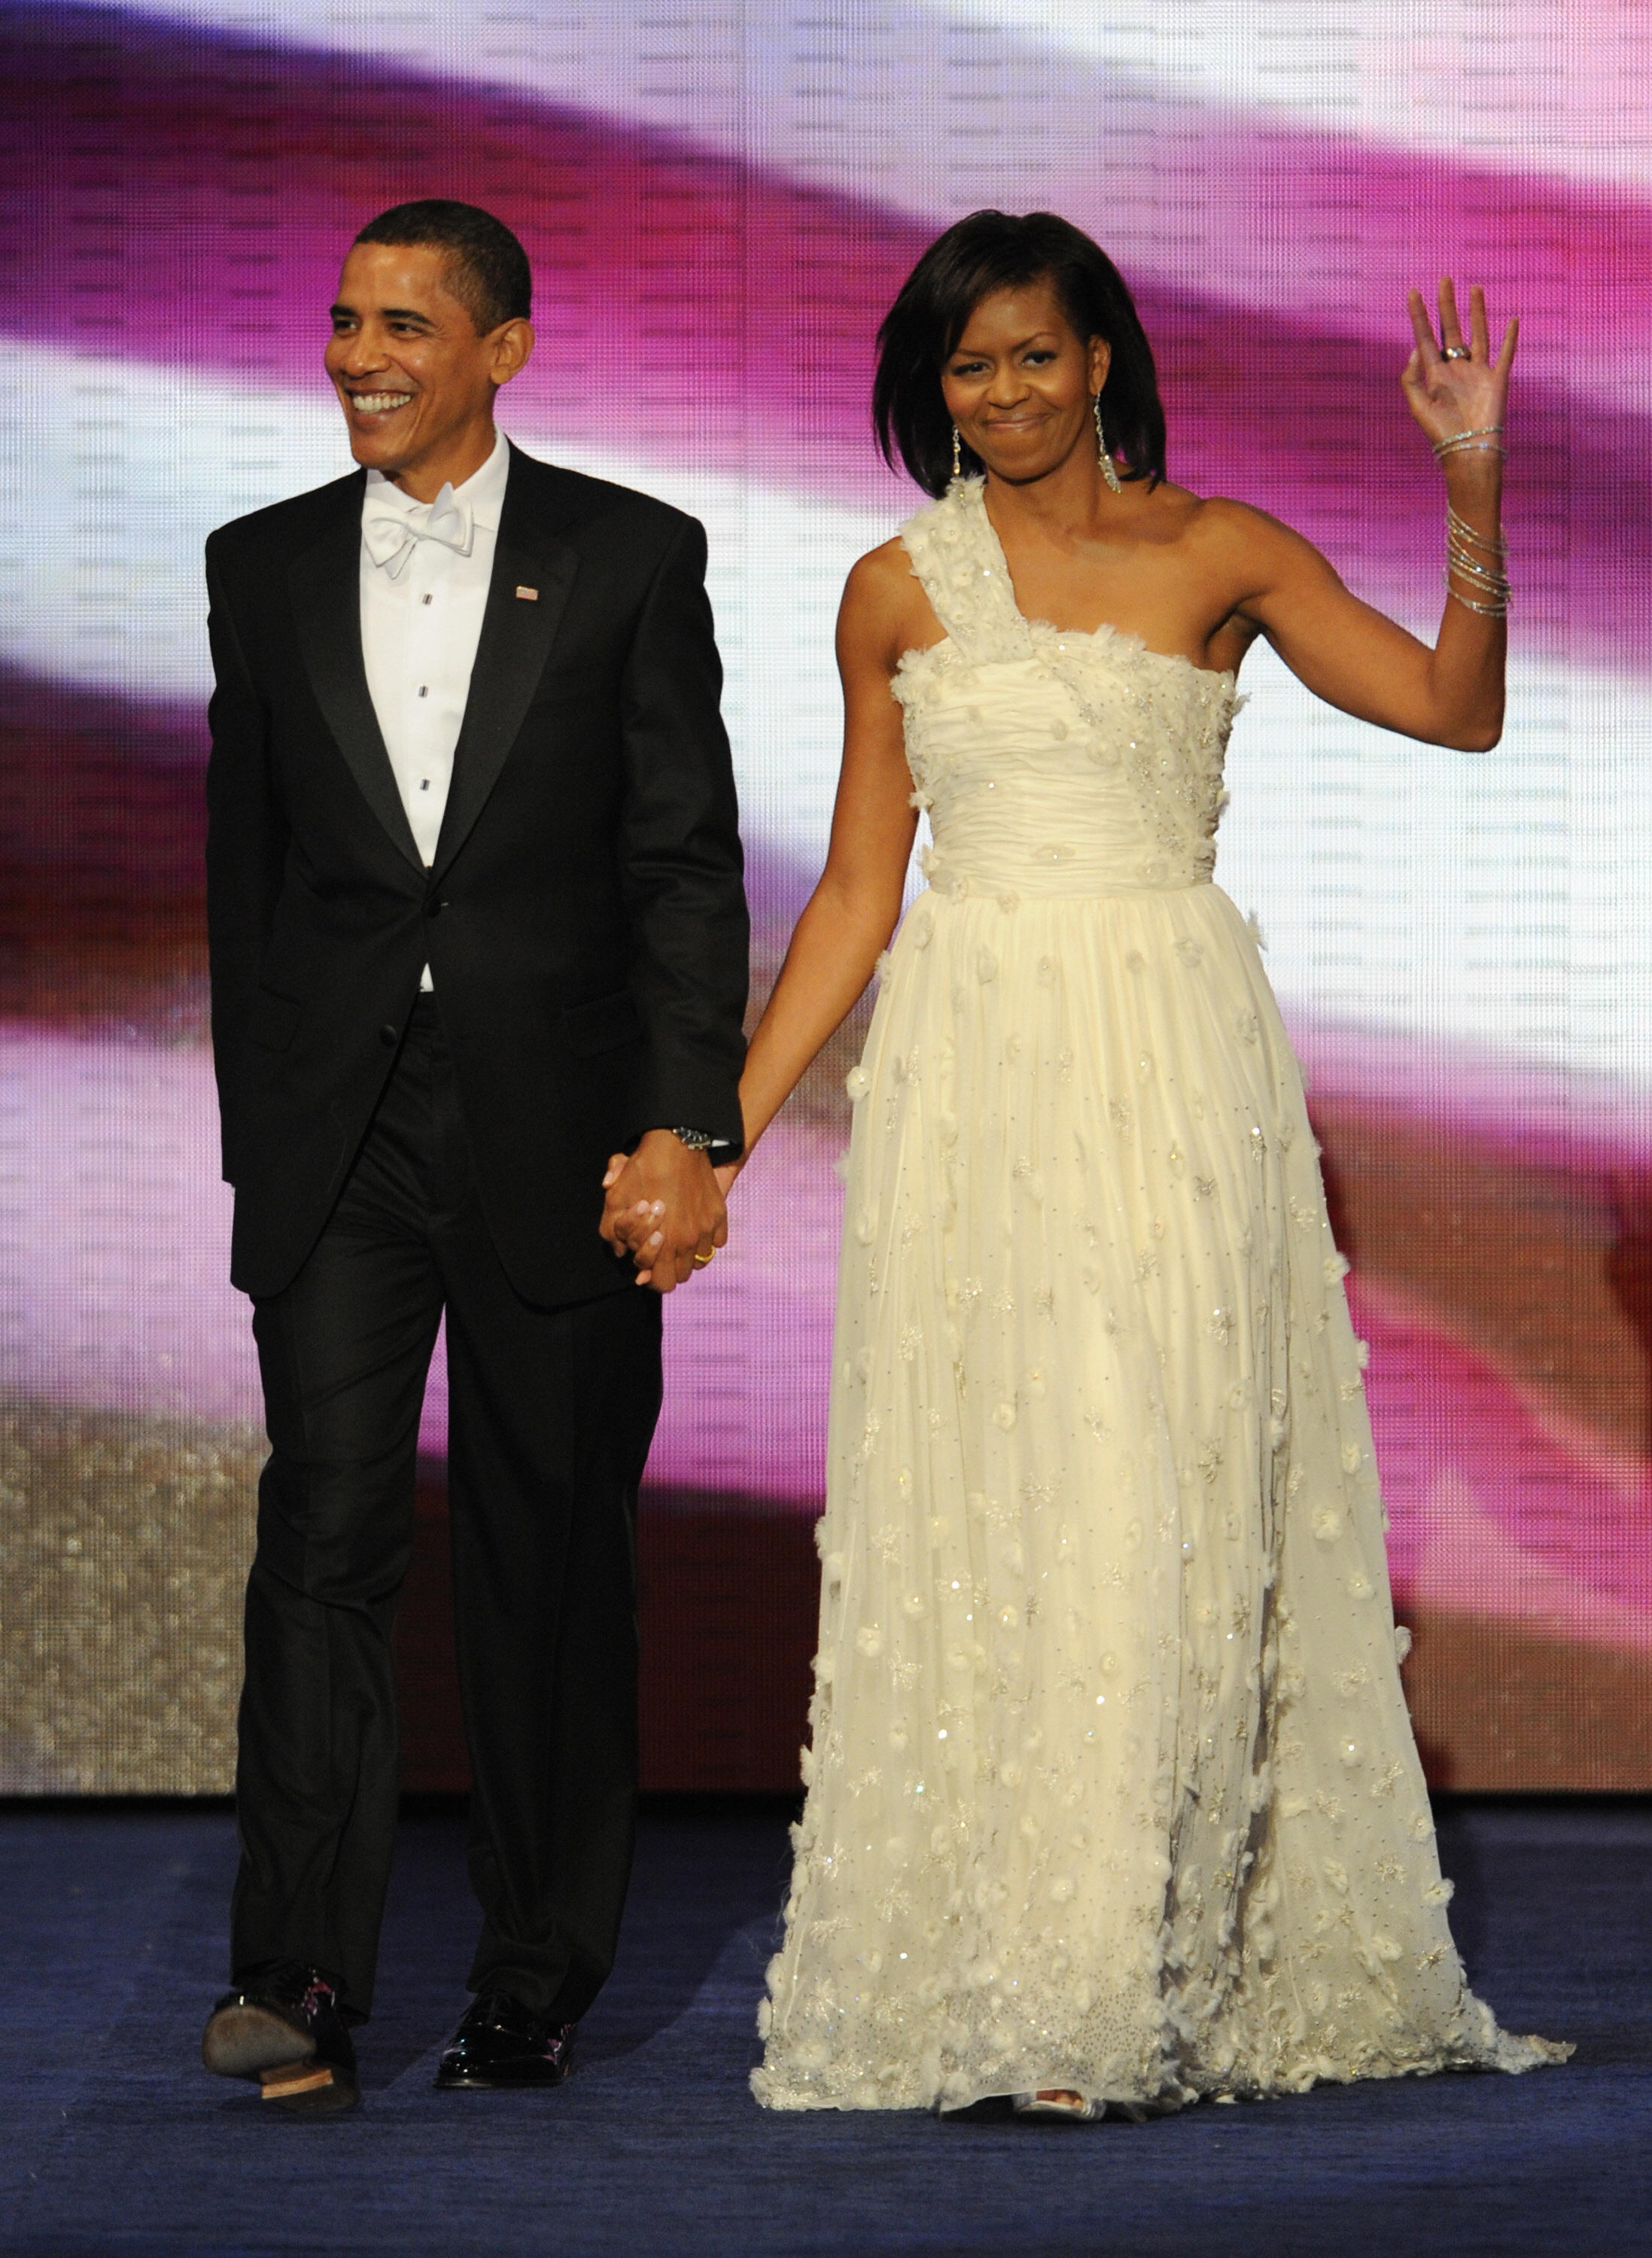 President Barack Obama and Michelle Obama arrive at the Neighborhood Ball January 20, 2009 in Washington, D.C.